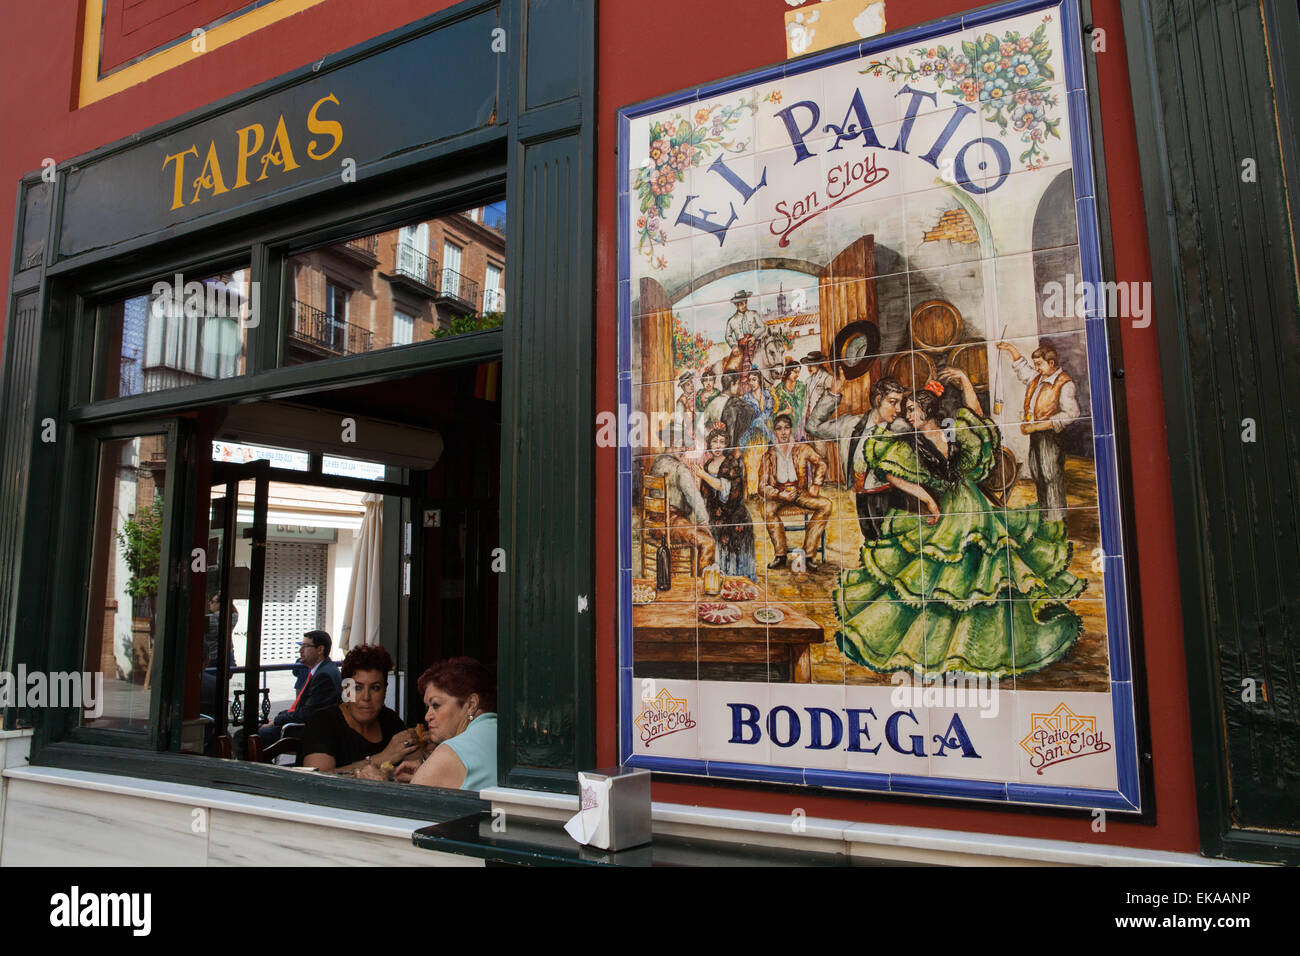 El Patio Tapas Bar In The Triana District Of Seville